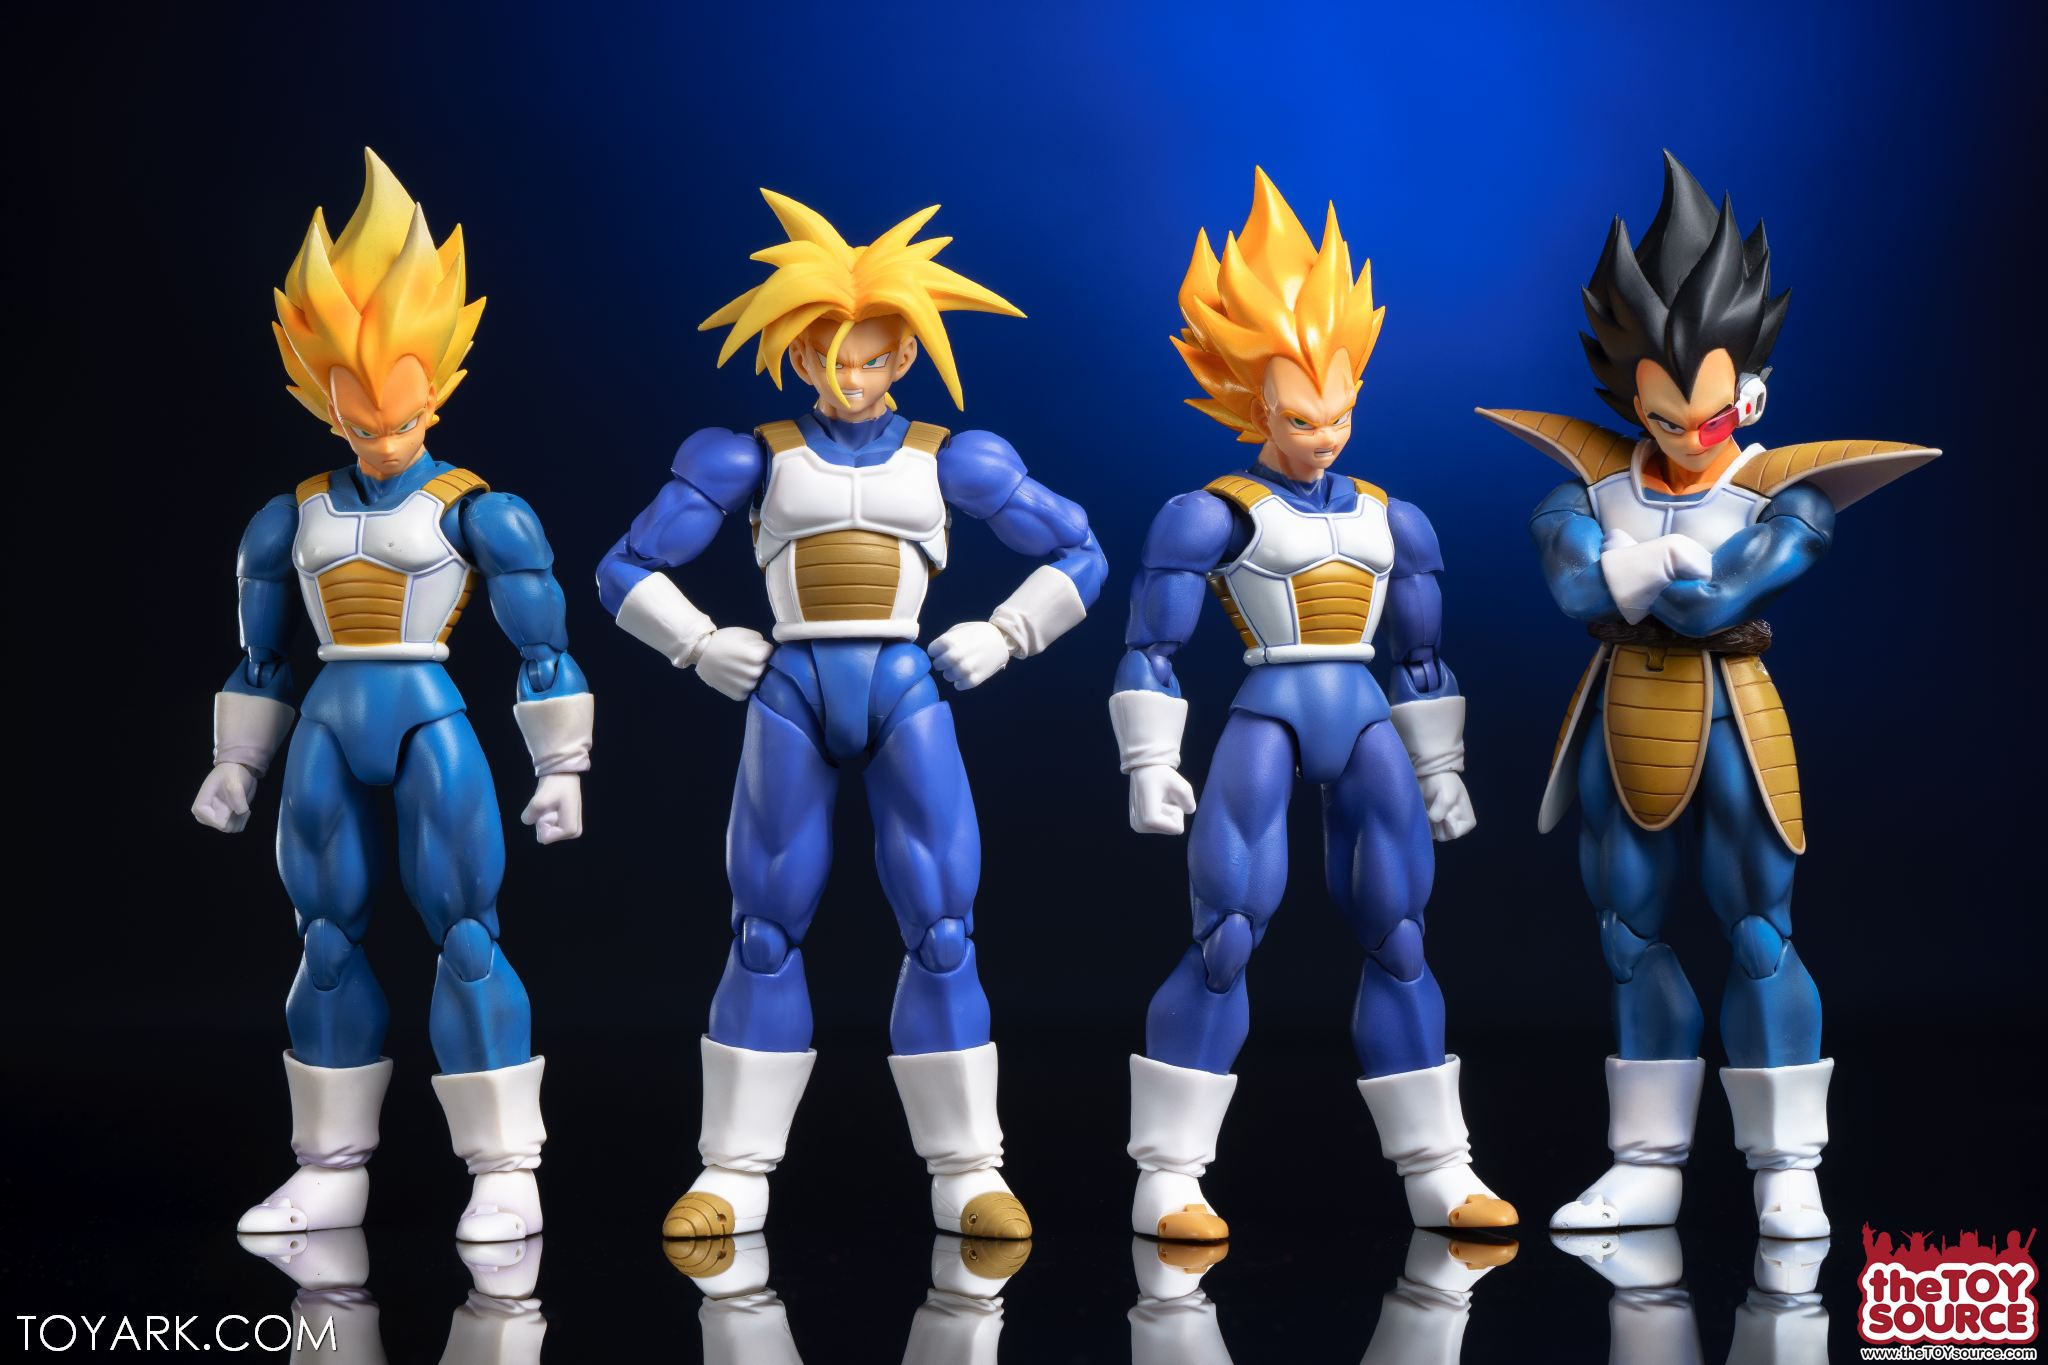 S H Figuarts Super Saiyan Armor Trunks In Hand Gallery The Toyark News However i do love the fact that i have a vegeta figure with all his original saiyan armor and scouters and his tail. the toyark